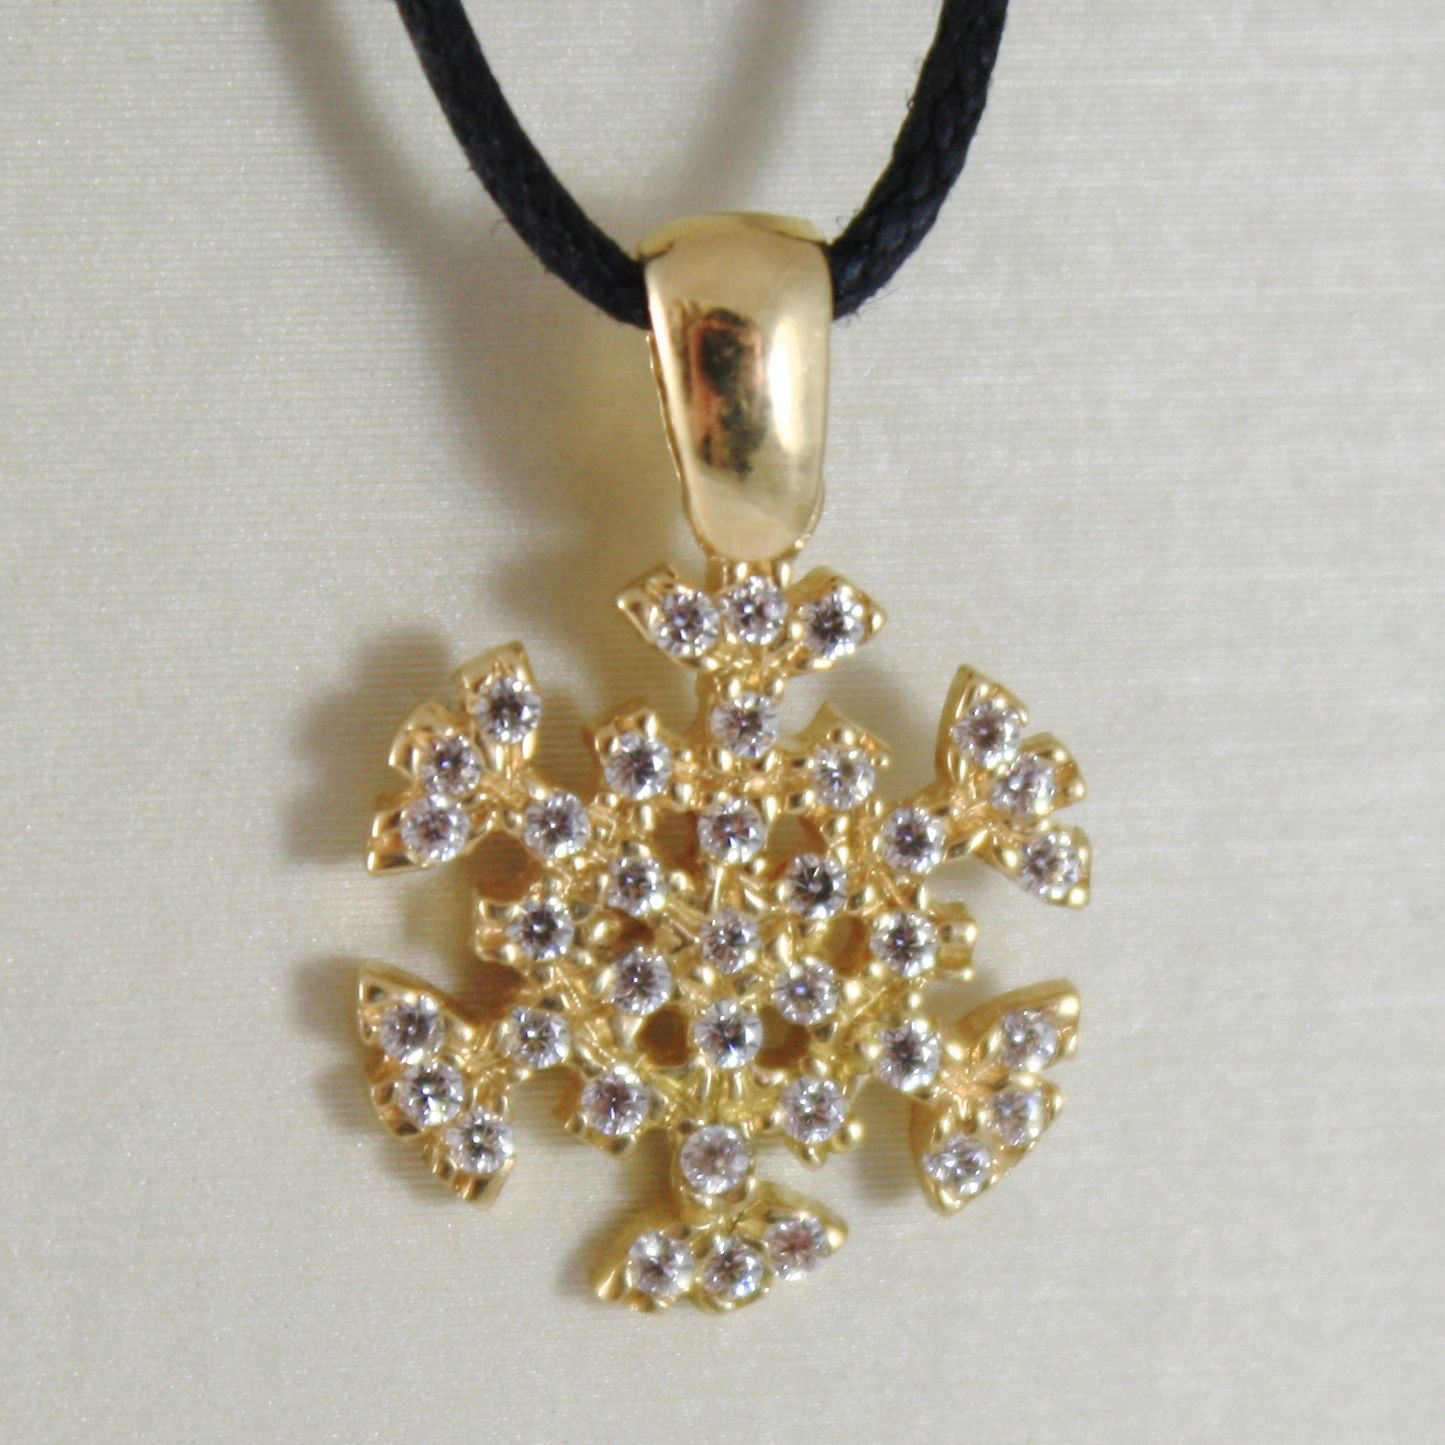 YELLOW GOLD PENDANT 750 18K, SNOWFLAKE, LONG 2 CM ZIRCON MADE IN ITALY